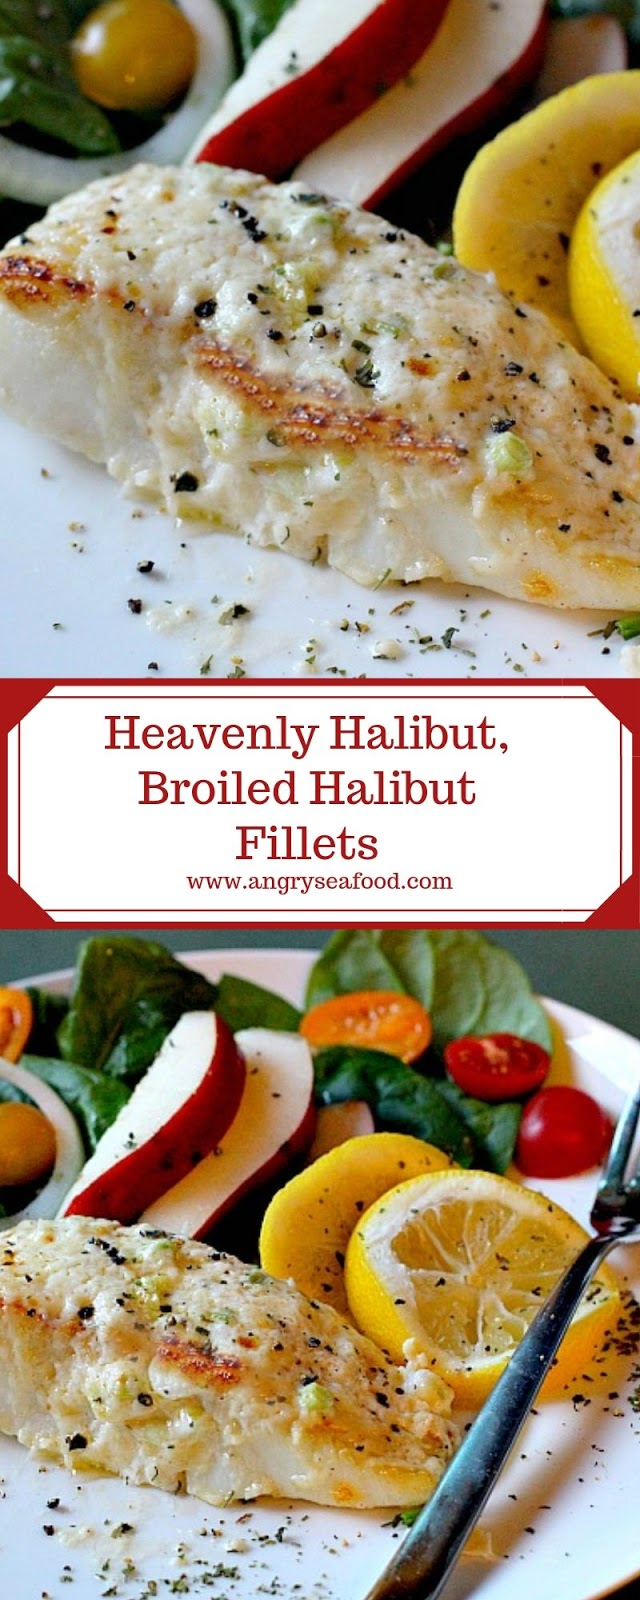 Heavenly Halibut, Broiled Halibut Fillets